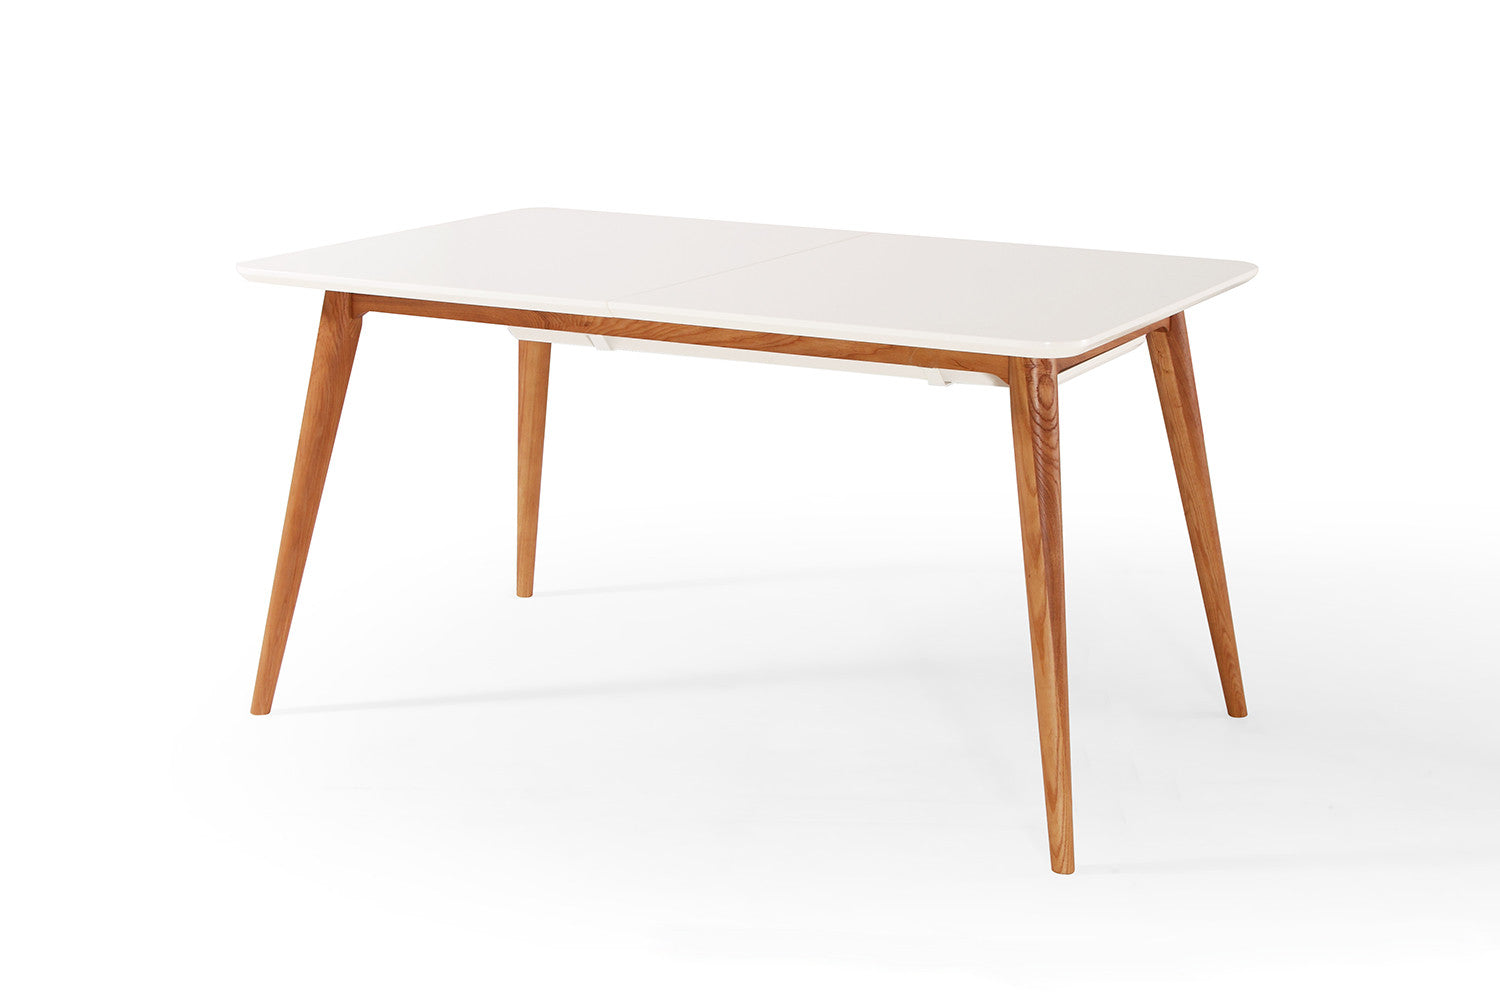 Table de salle manger extensible scandinave wyna dewarens for Table de salle a manger rectangulaire